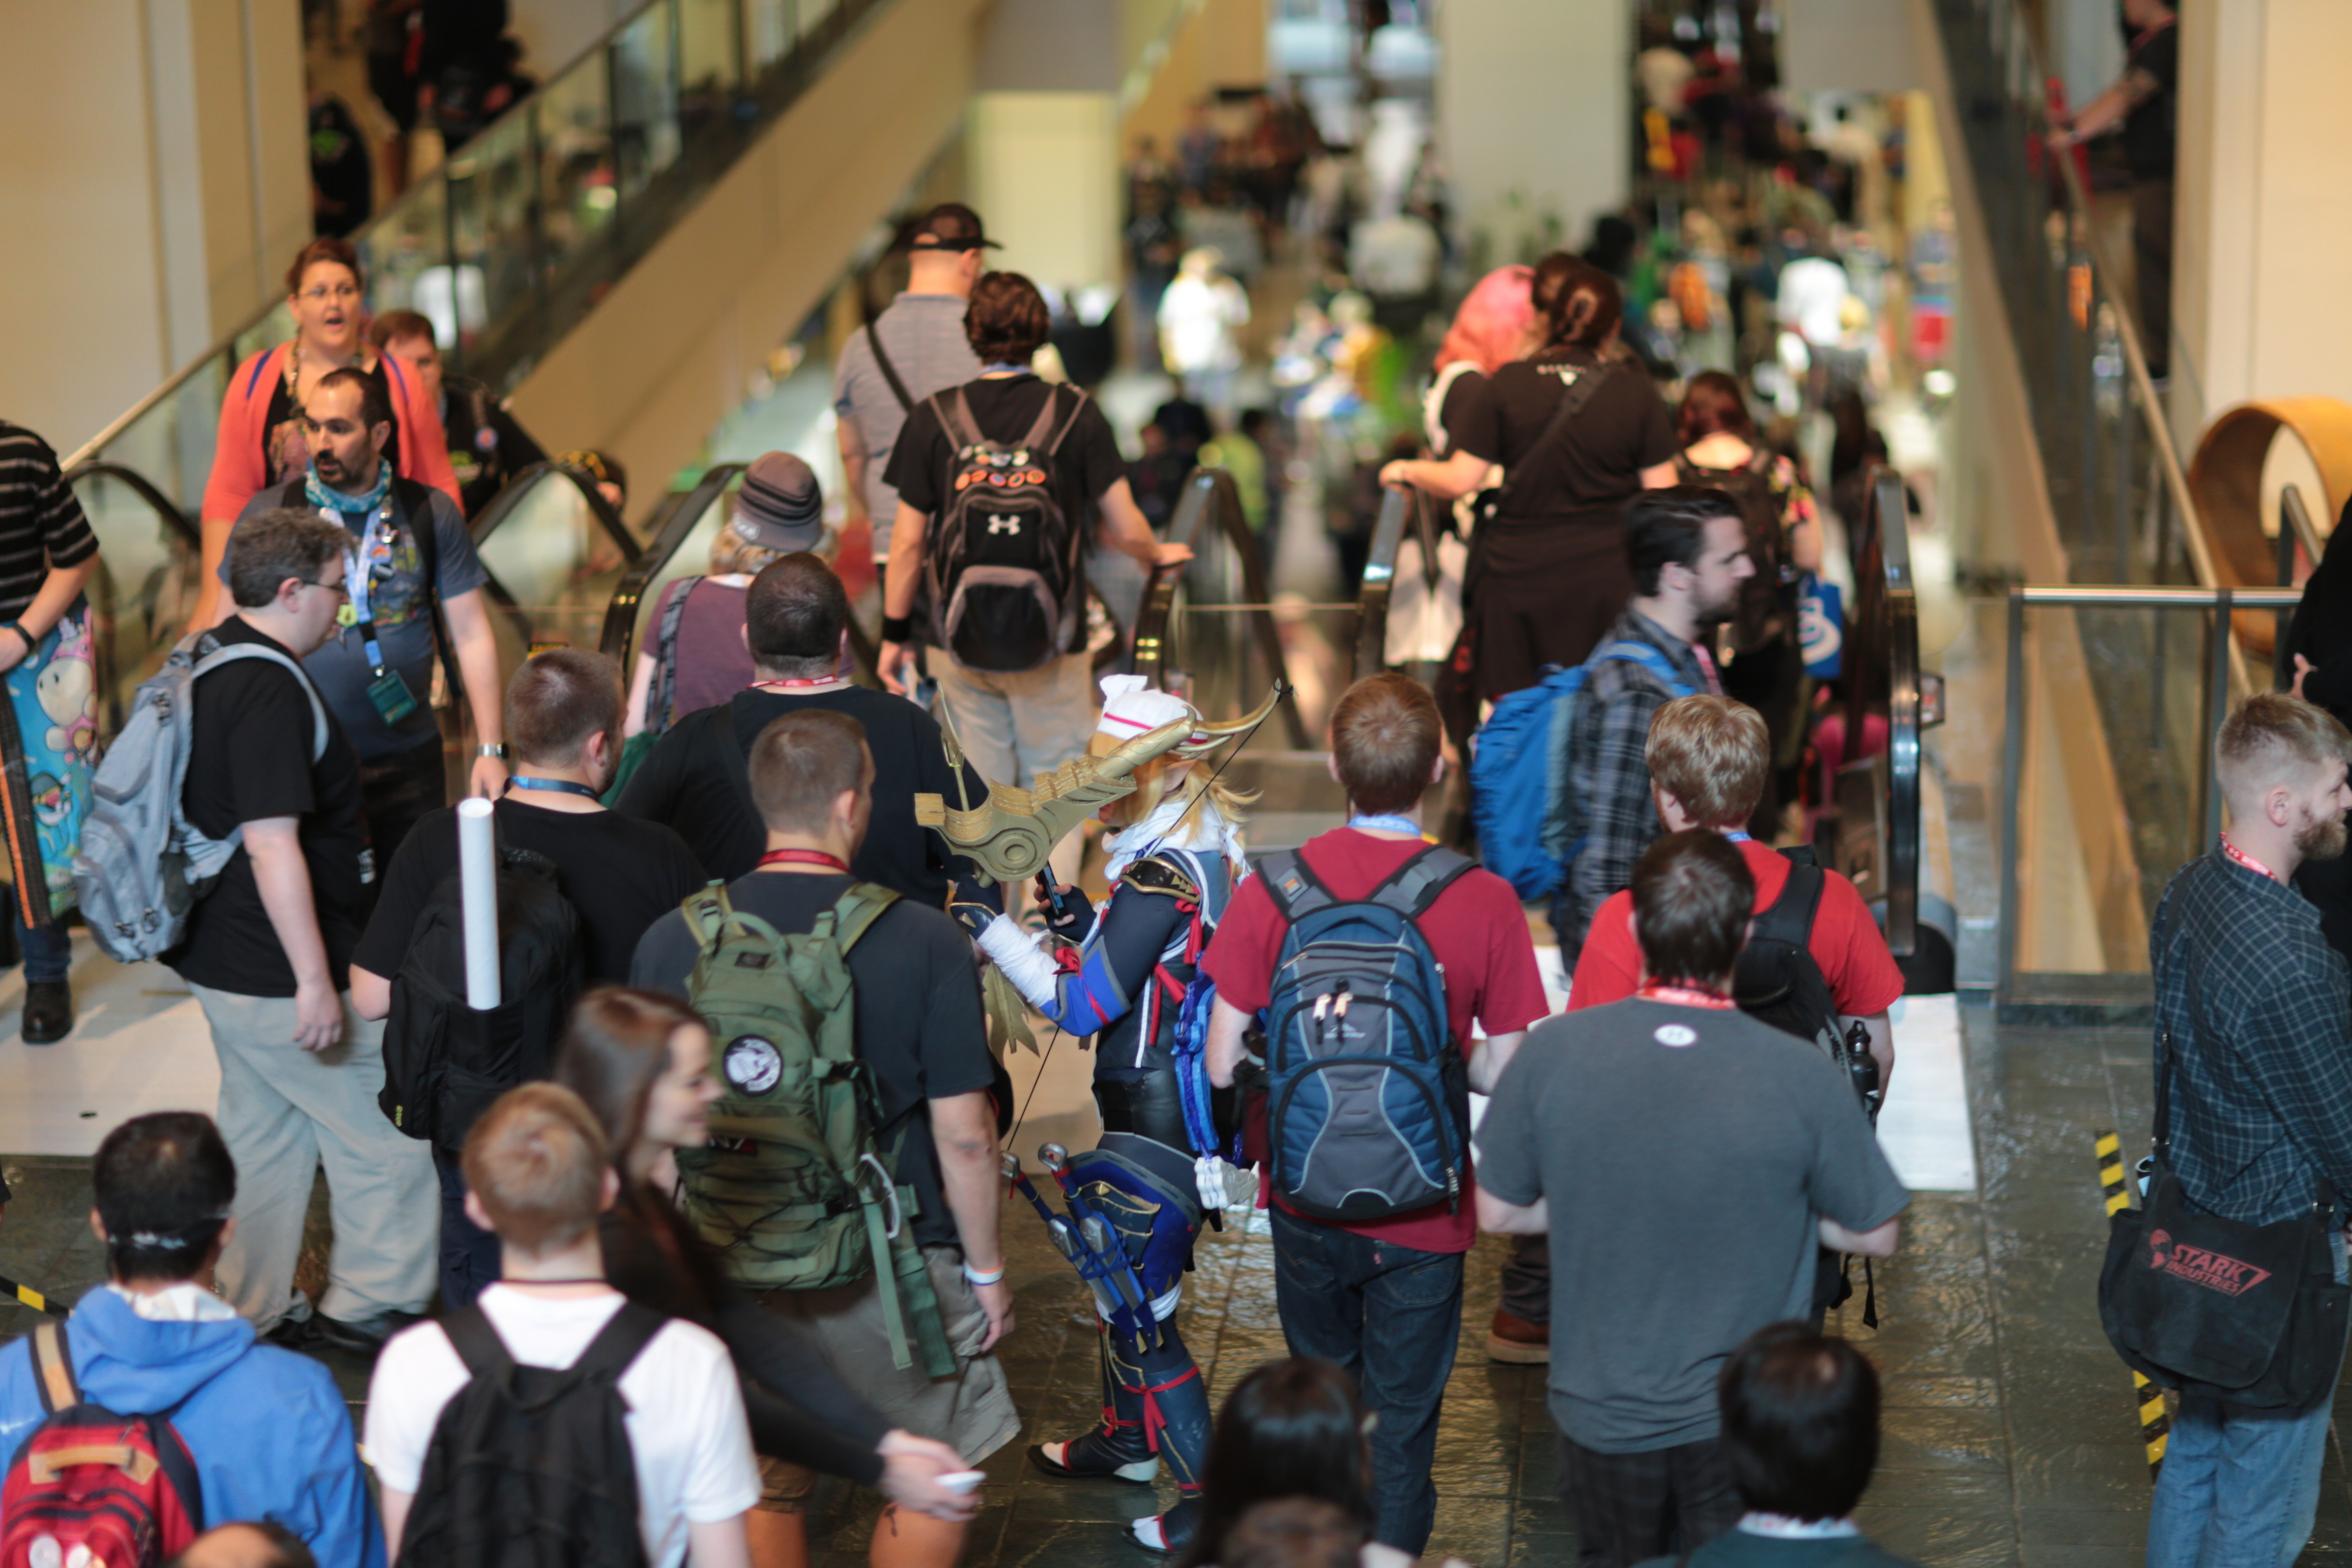 crowds getting on the escalators at PAX Prime 2015